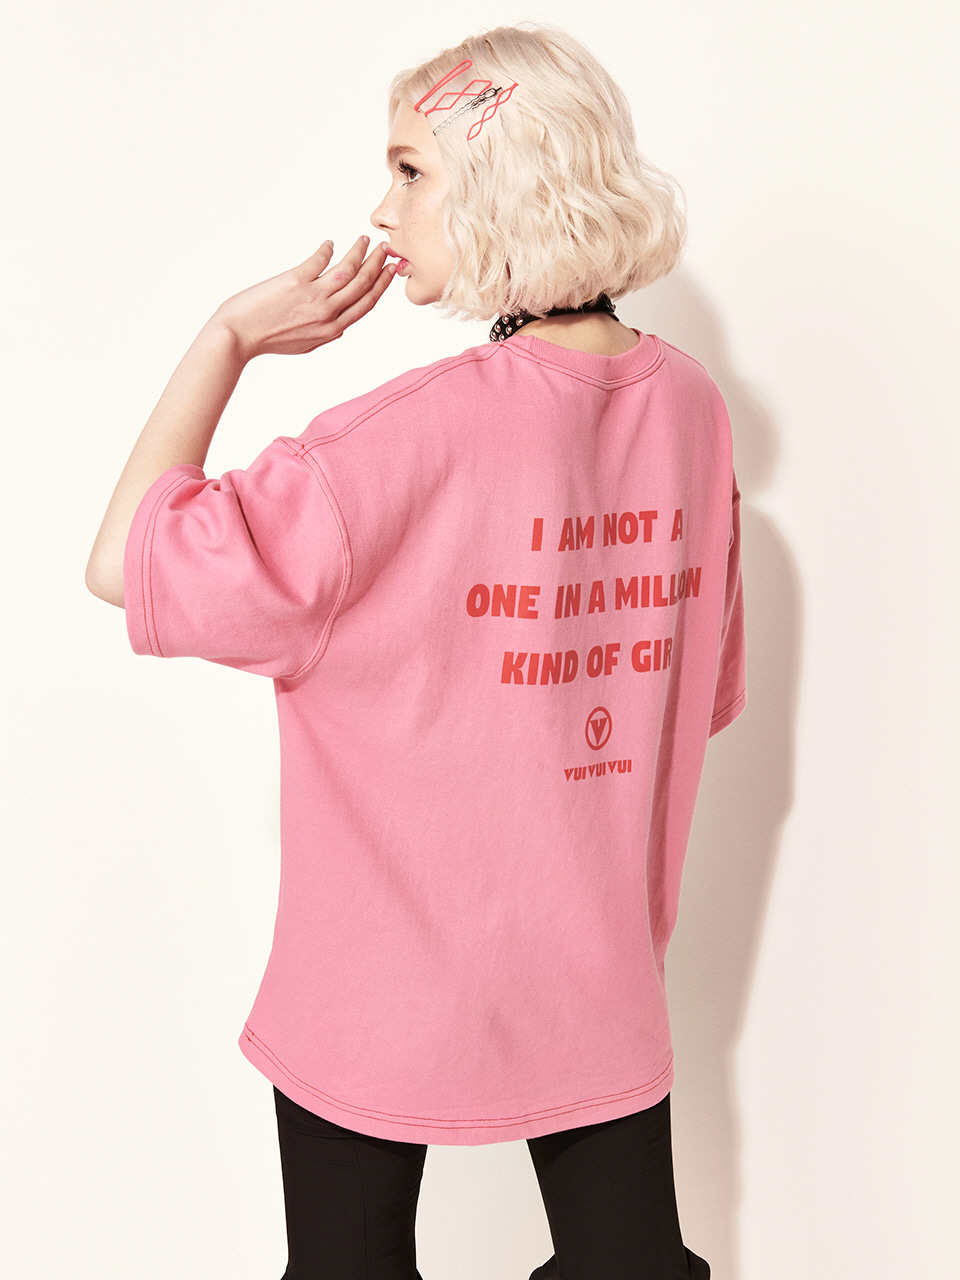 VVV PINK ONE OF KIND T-SHIRT